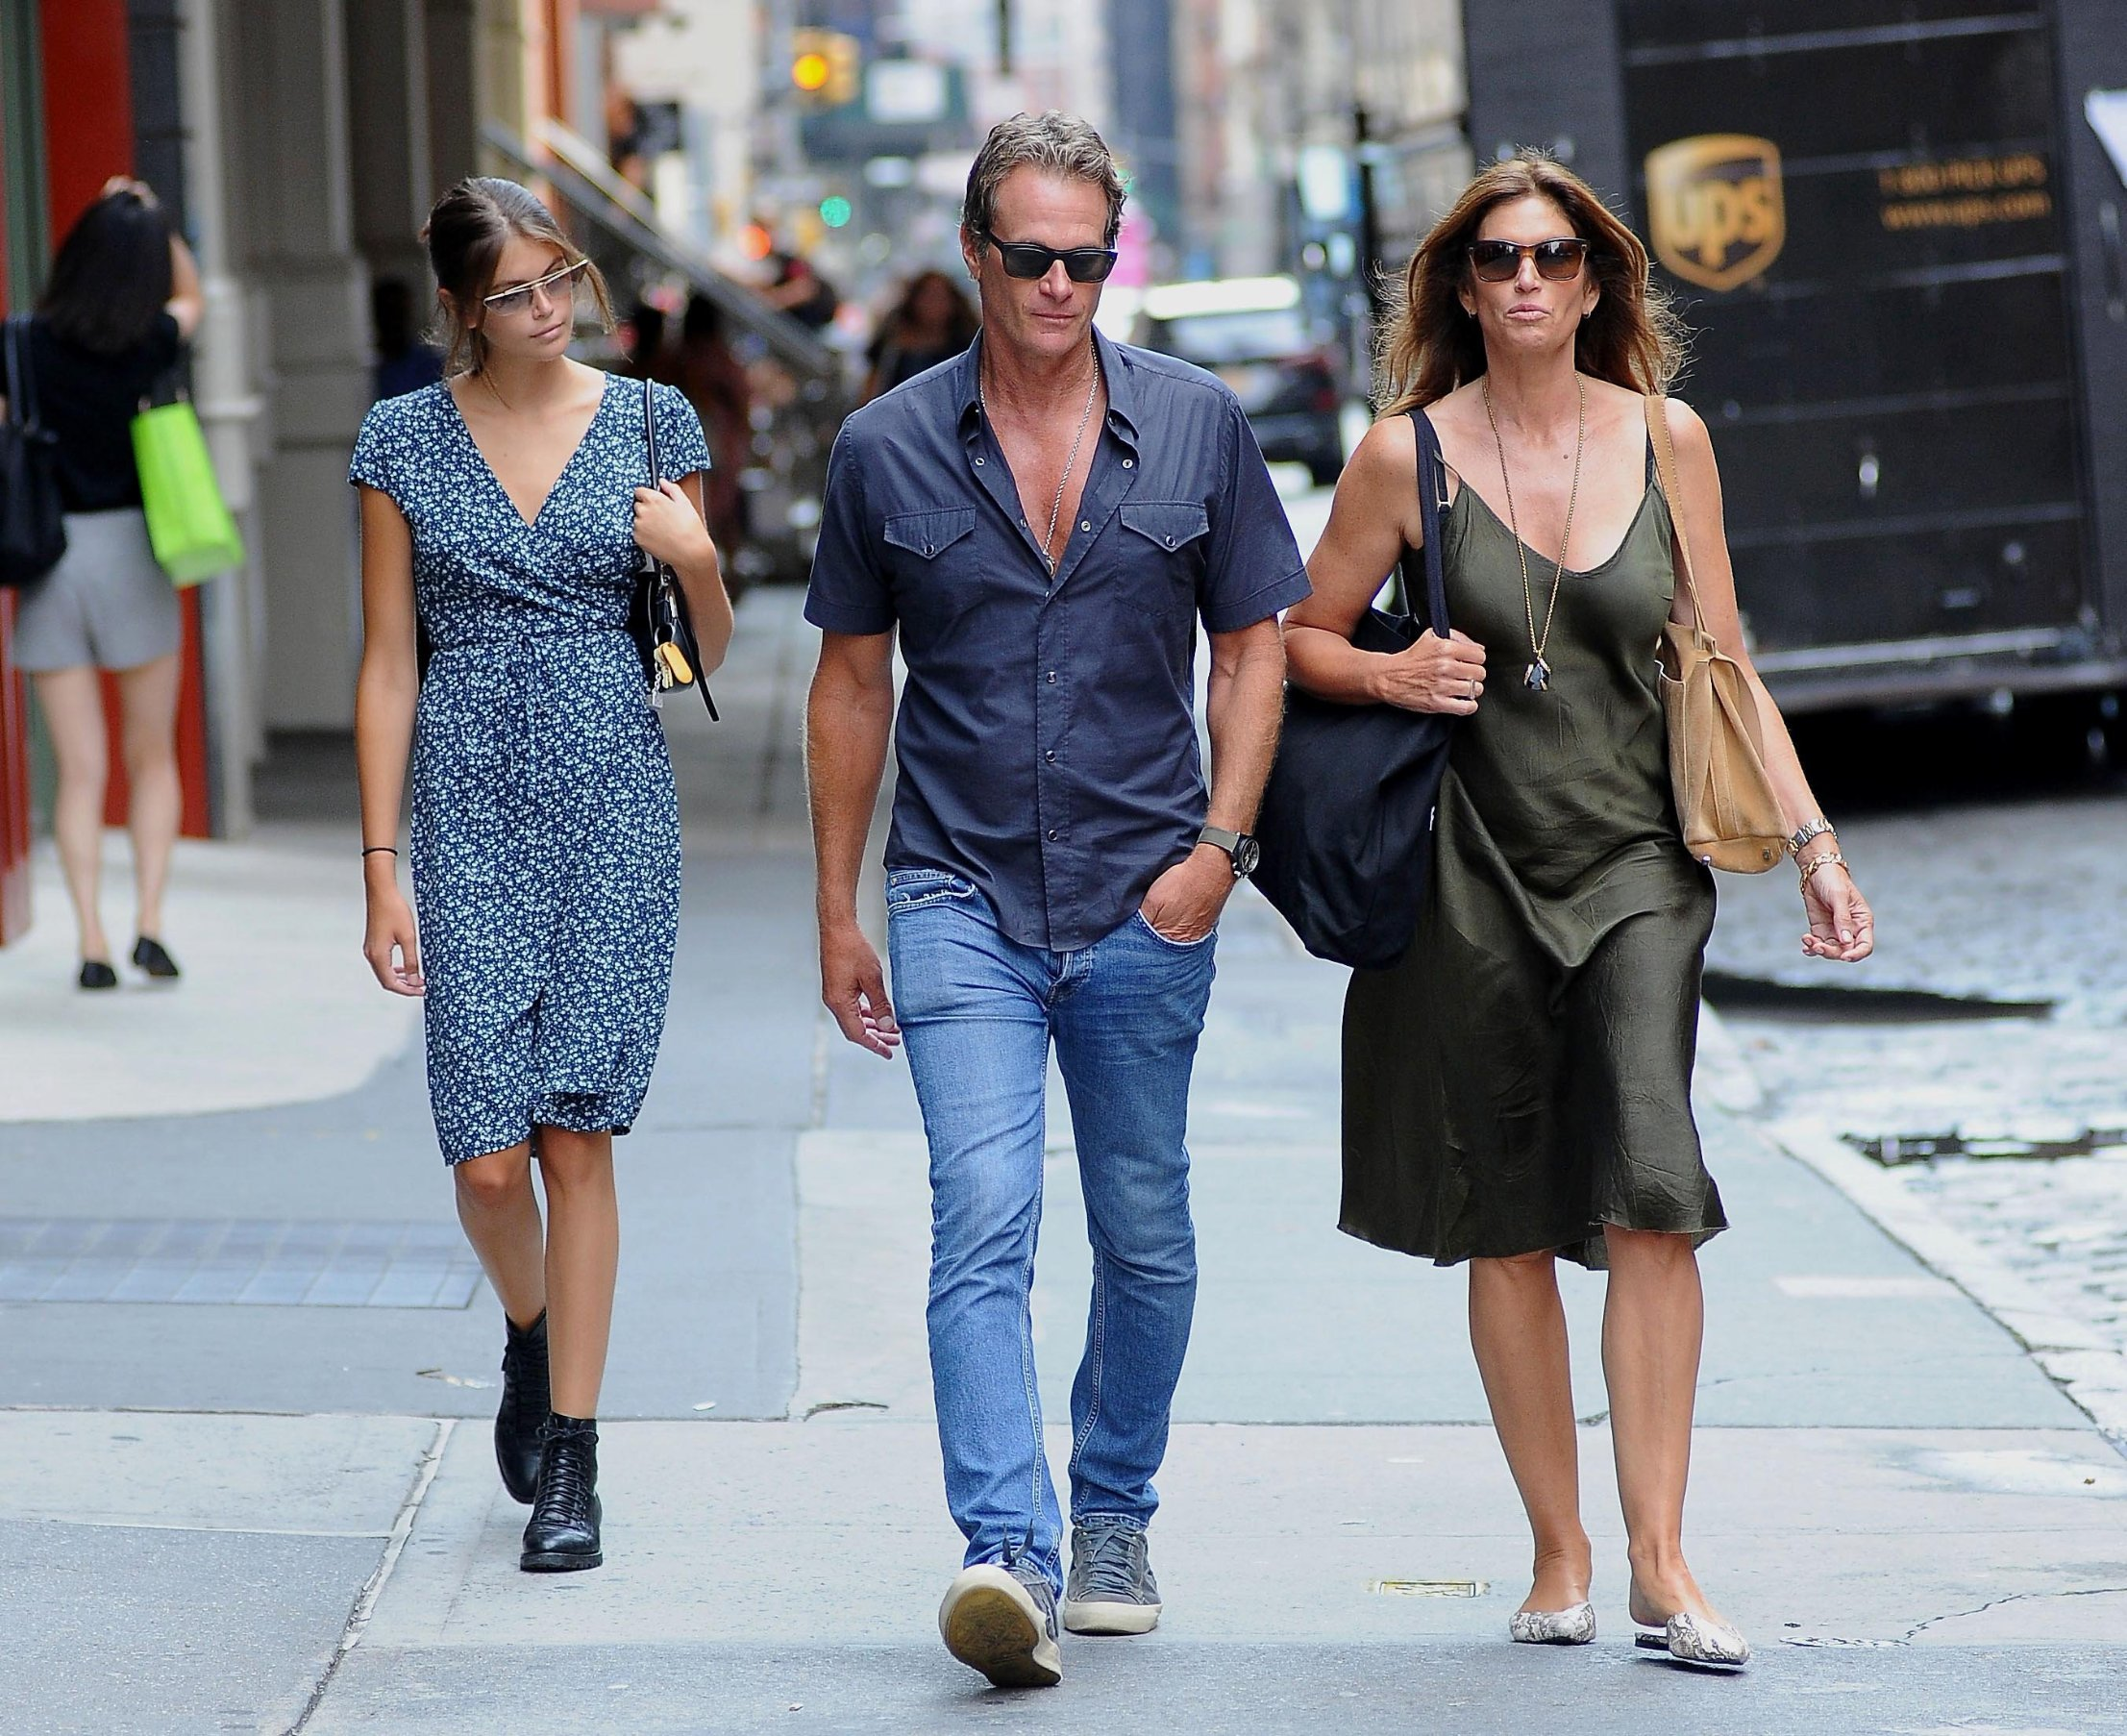 -New York, NY - 20190806-Cindy Crawford, Daughter Kaia Gerber and Husband Rande Gerber Take a Walk in Soho  -PICTURED: Cindy Crawford, Kaia Gerber and Rande Gerber  -, Image: 462743935, License: Rights-managed, Restrictions: , Model Release: no, Credit line: Profimedia, INSTAR Images